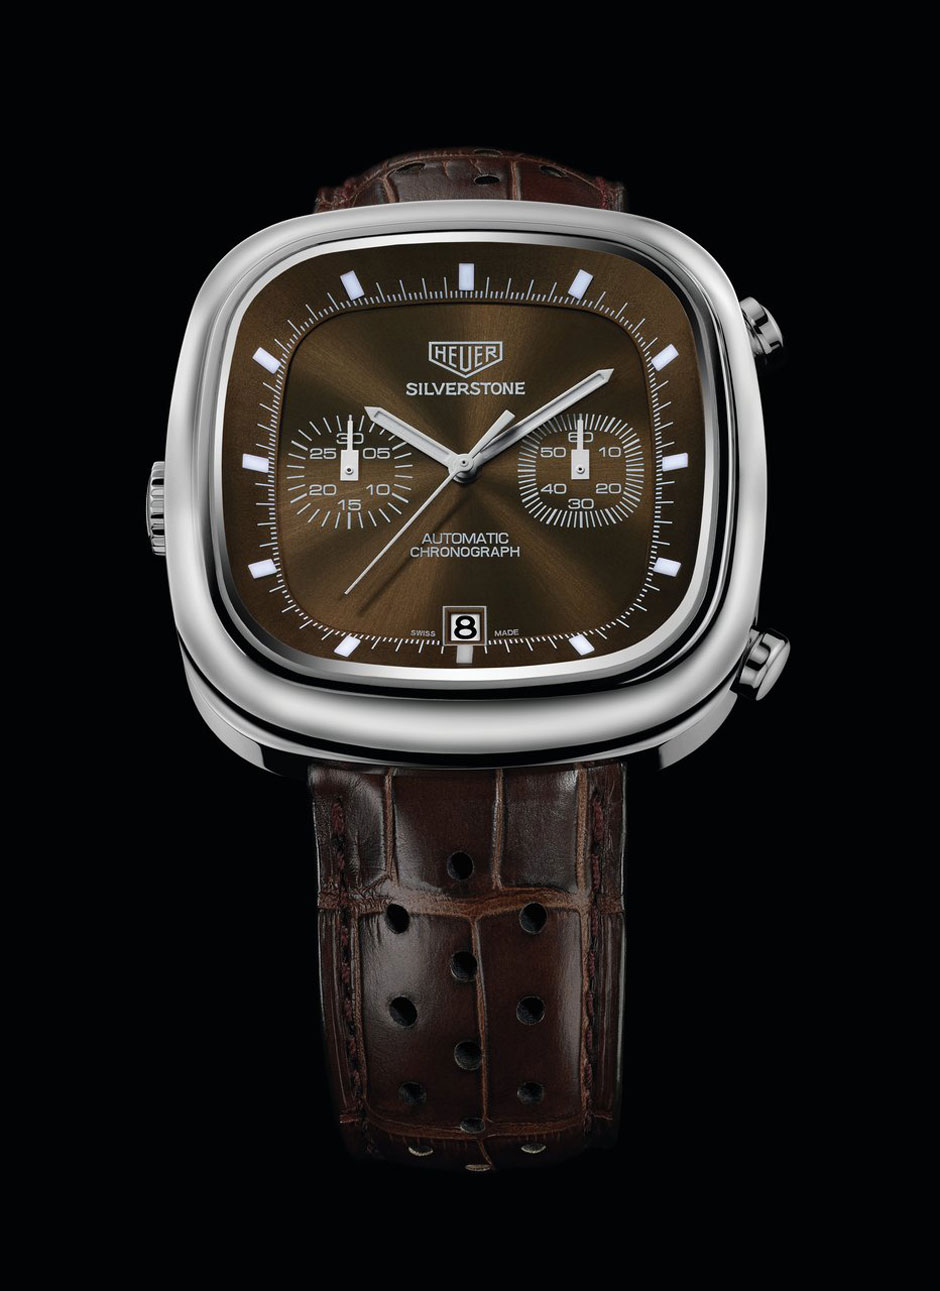 TAG Heuer Silverstone Chronograph watch 3